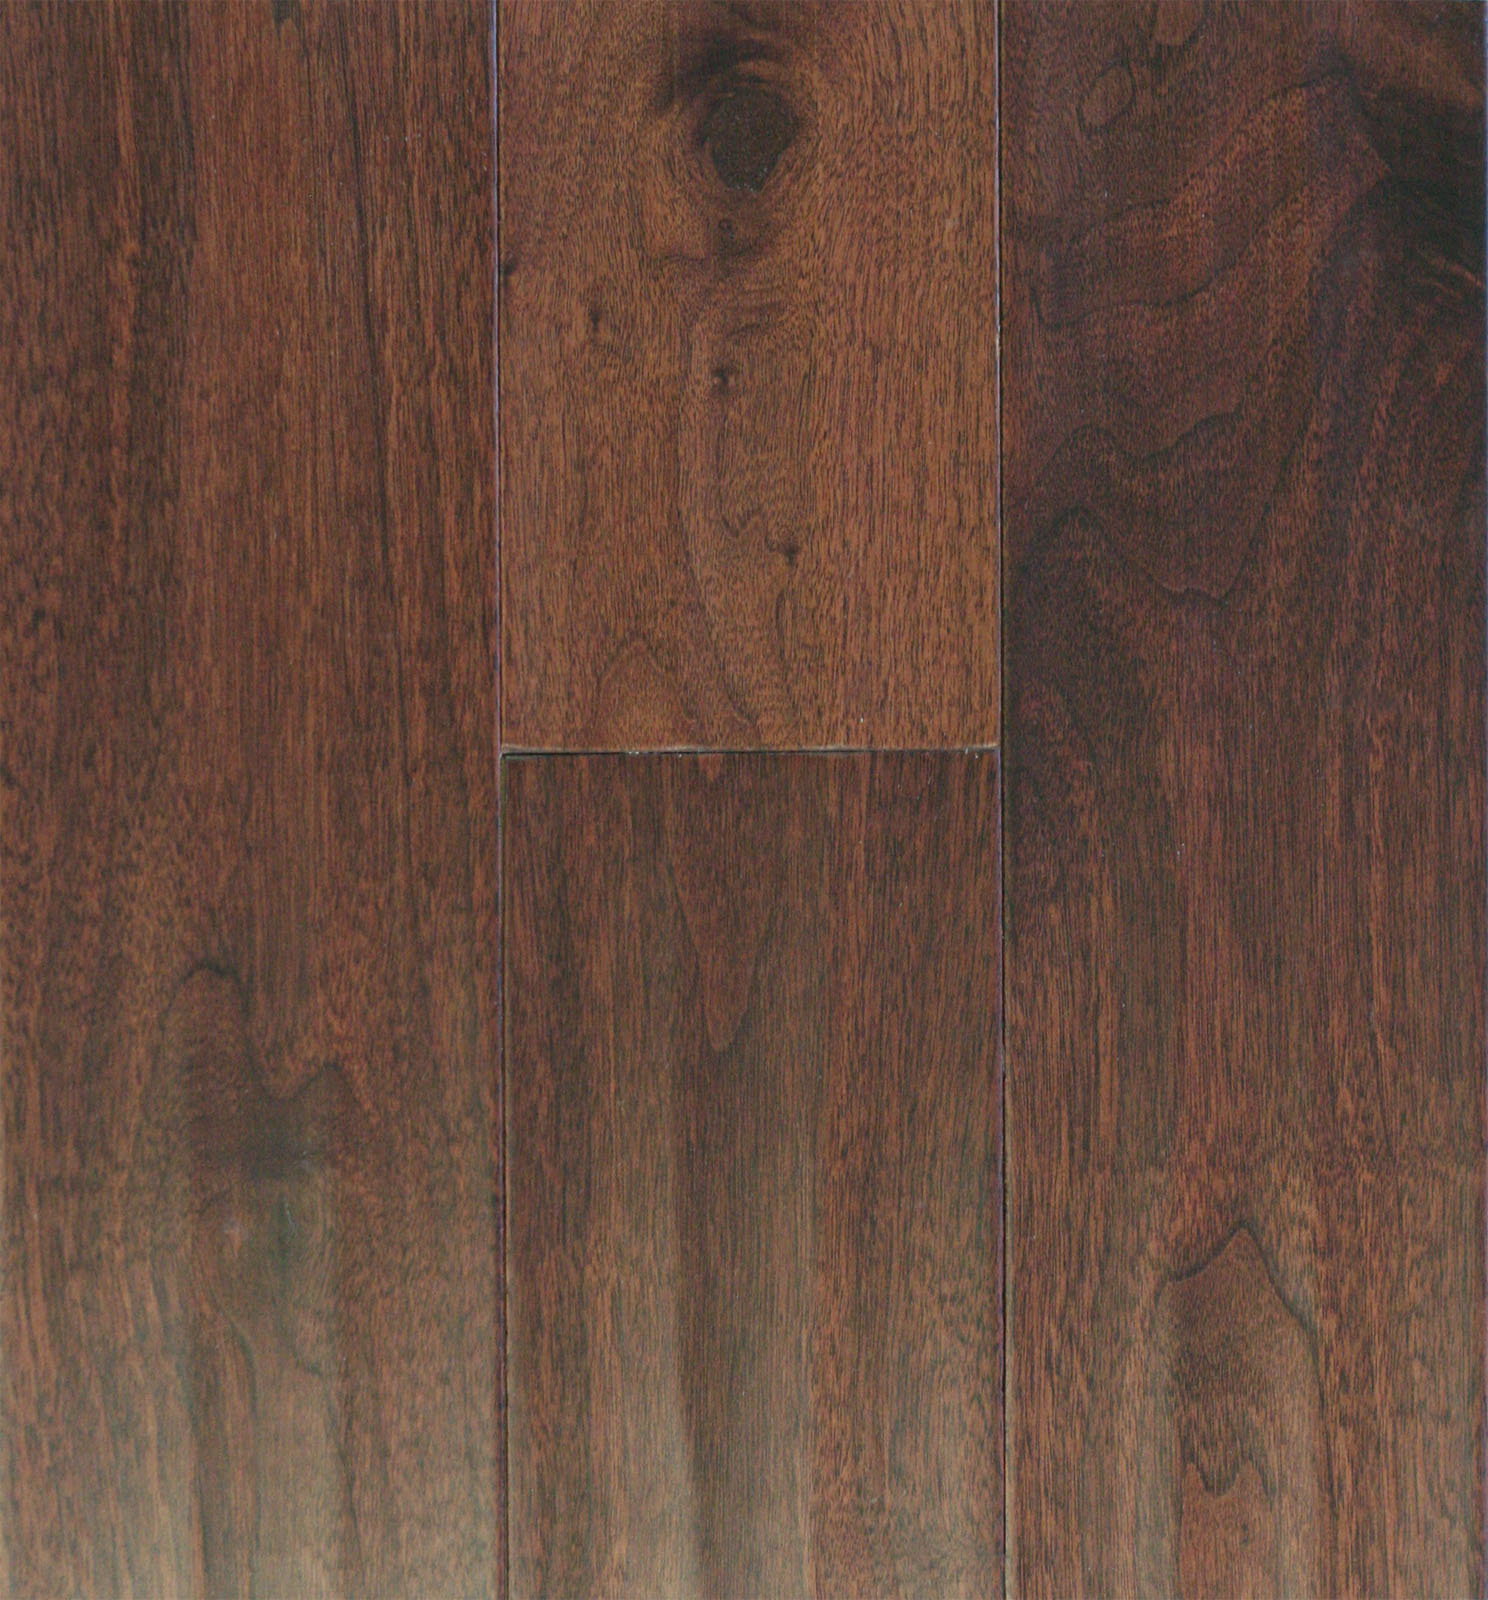 Engineered hardwood engineered hardwood hand scraped for Hand scraped wood floors